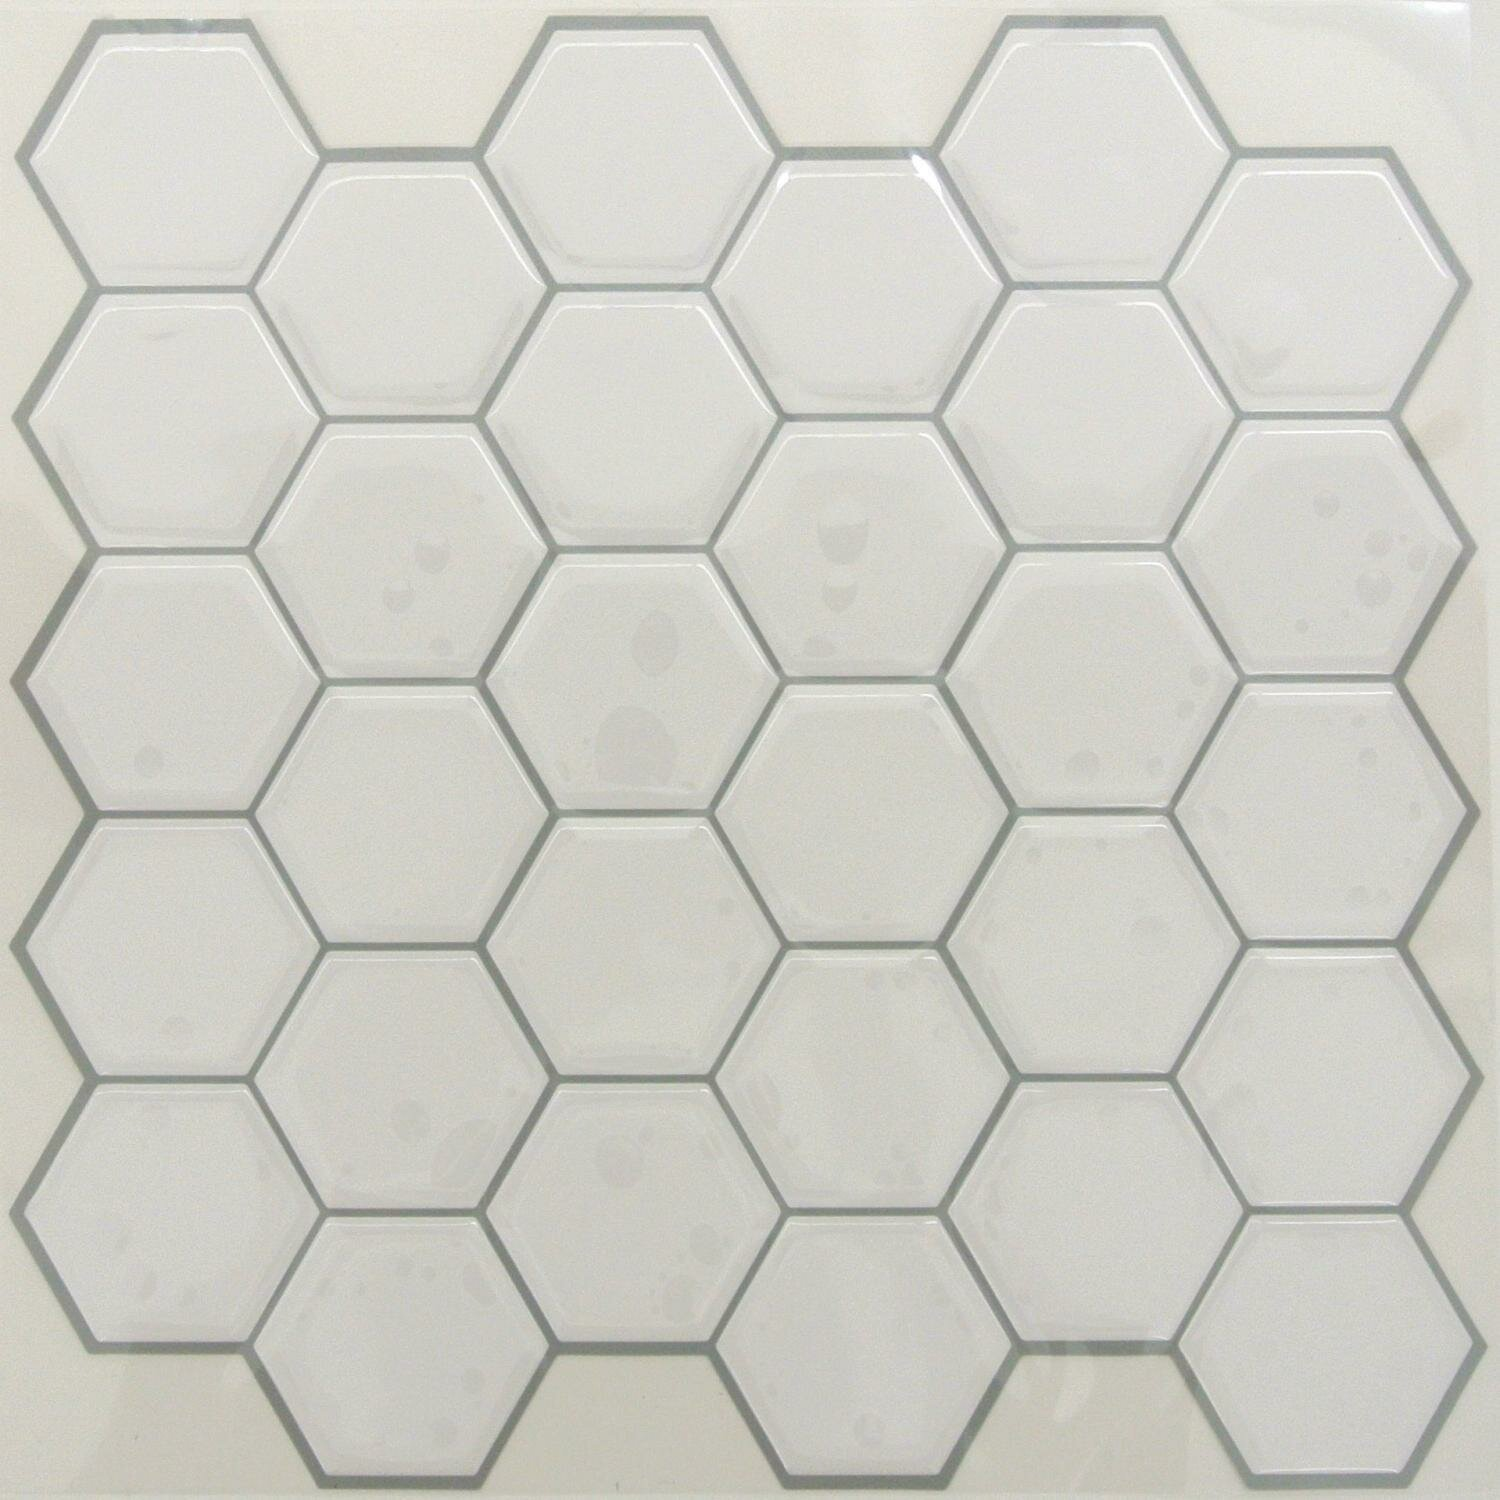 Room Mates Hexagon 105 X 105 Pvc Peel Stick Mosaic Tile In